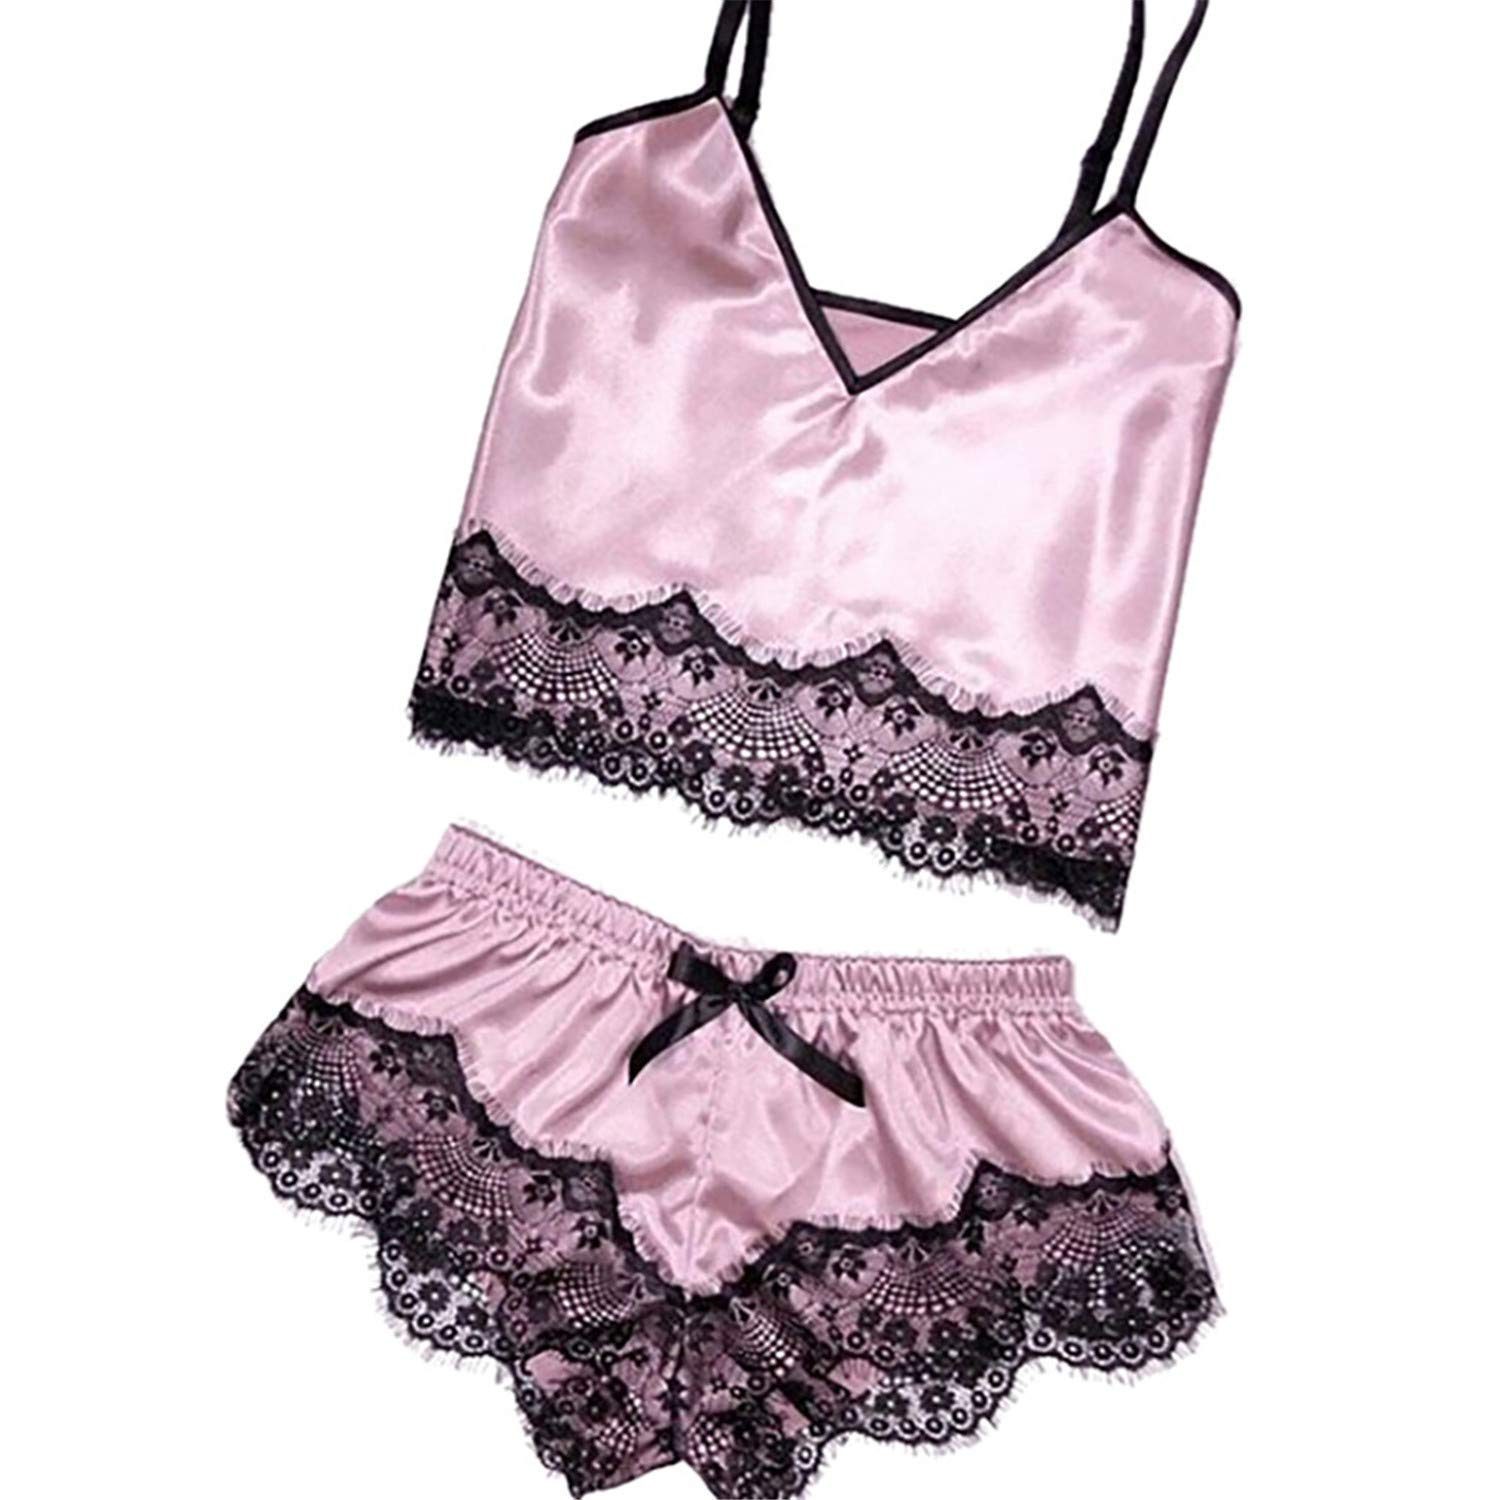 Fashion Lady Sexy Solid Satin Bowknot Sleepwear Lingerie Patchwork Lace Nightdress Underwear for Women Gift Pink XXL